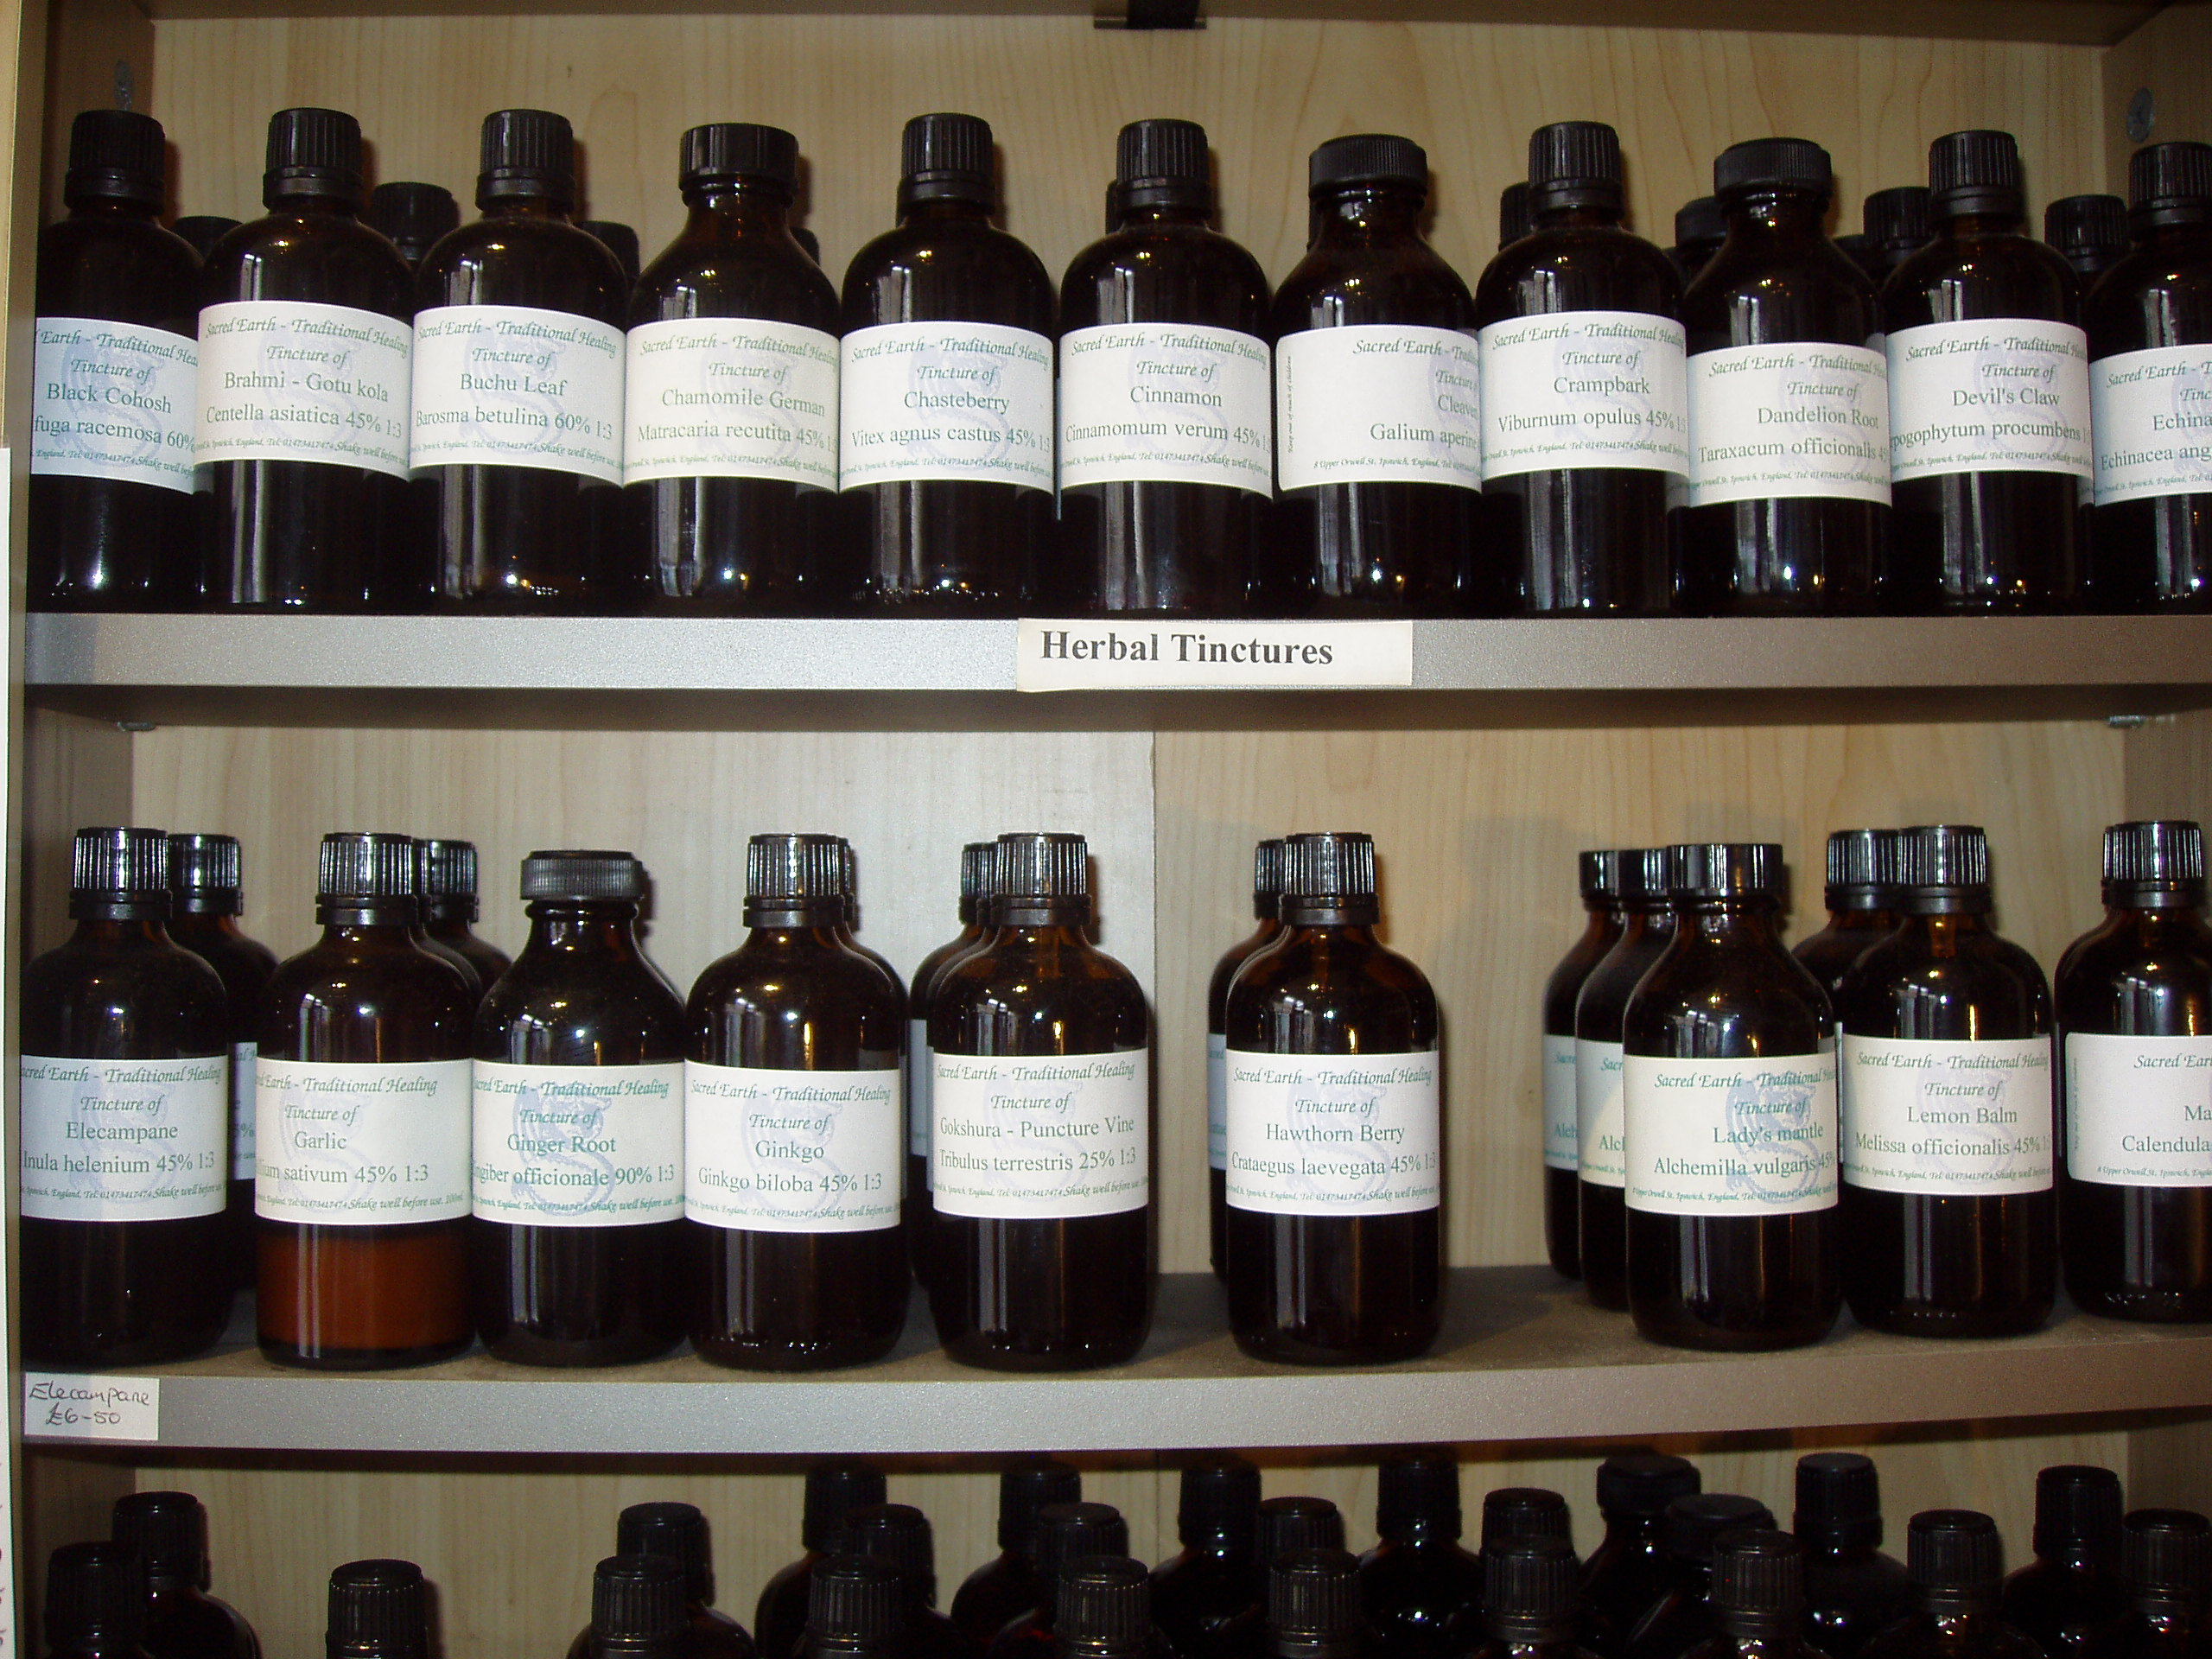 Herbal Tinctures - Nettle leaf